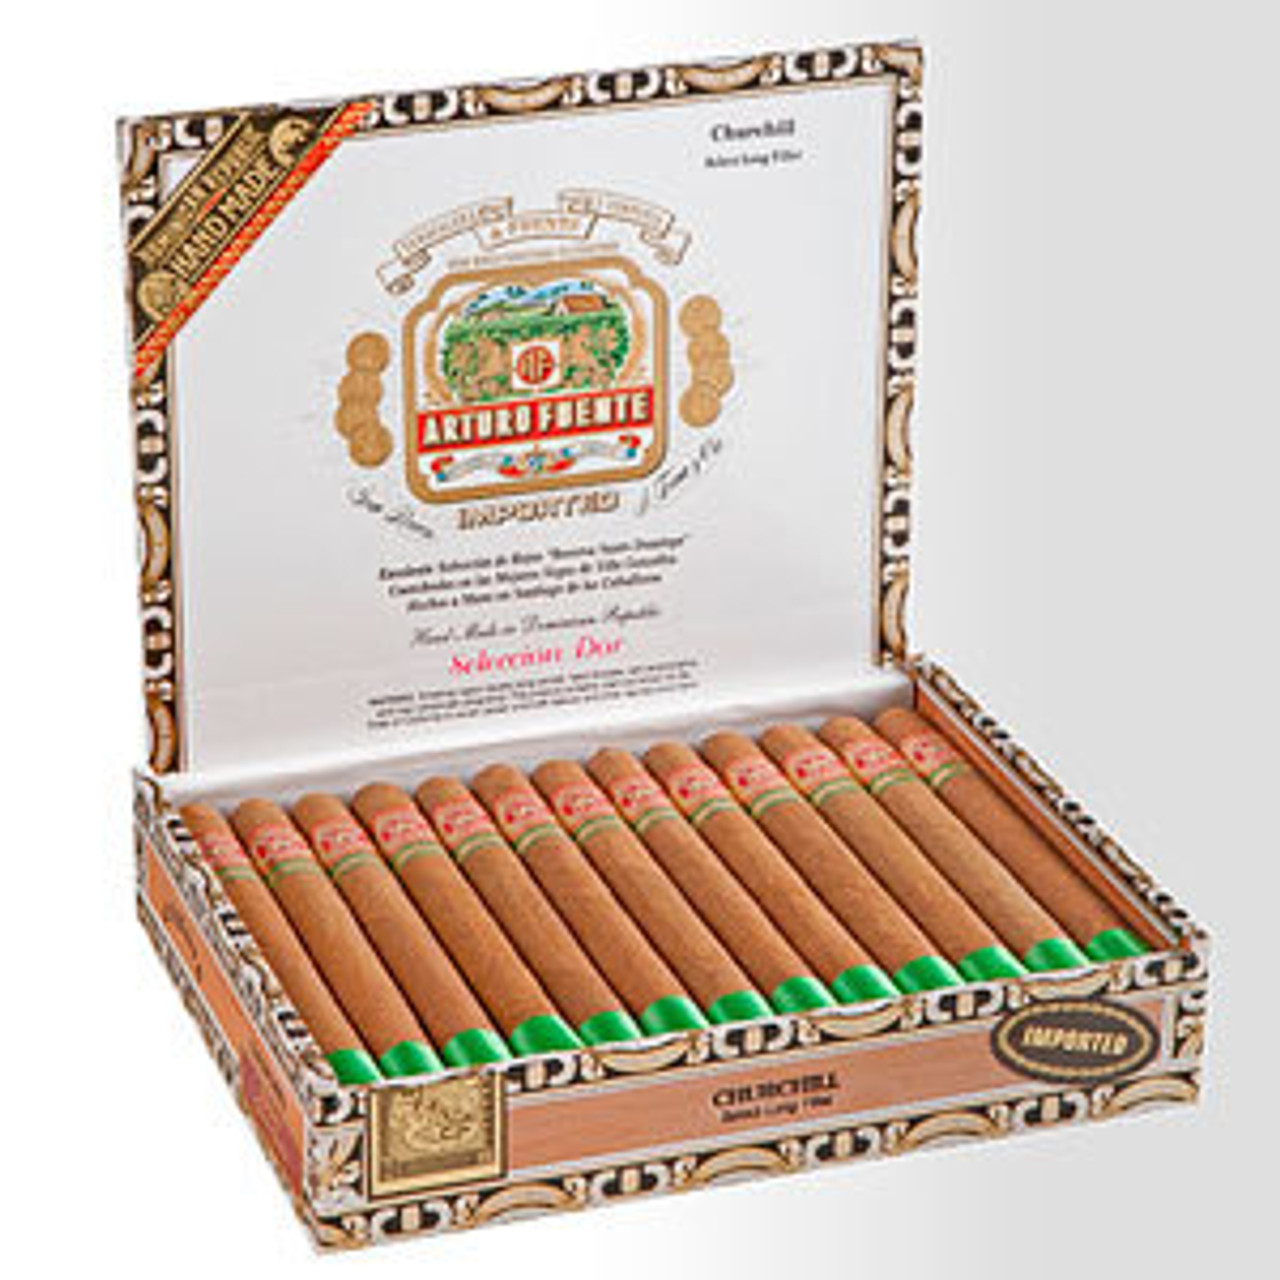 Arturo Fuente Double Chateau Maduro Cigars - 6 3/4 X 50 (Box of 20)